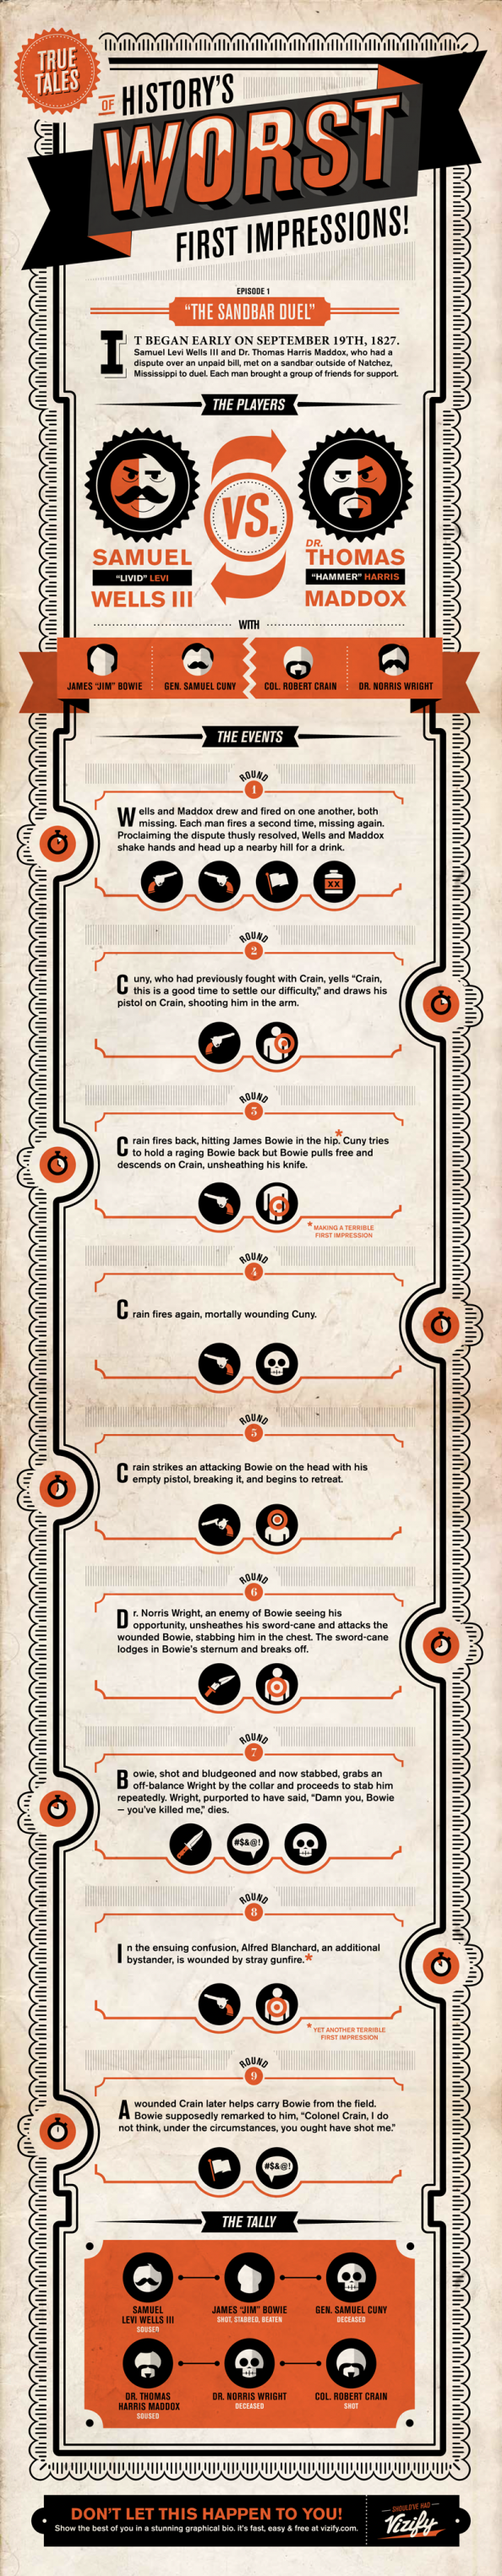 True Tales of History&#039;s Worst First Impressions Infographic